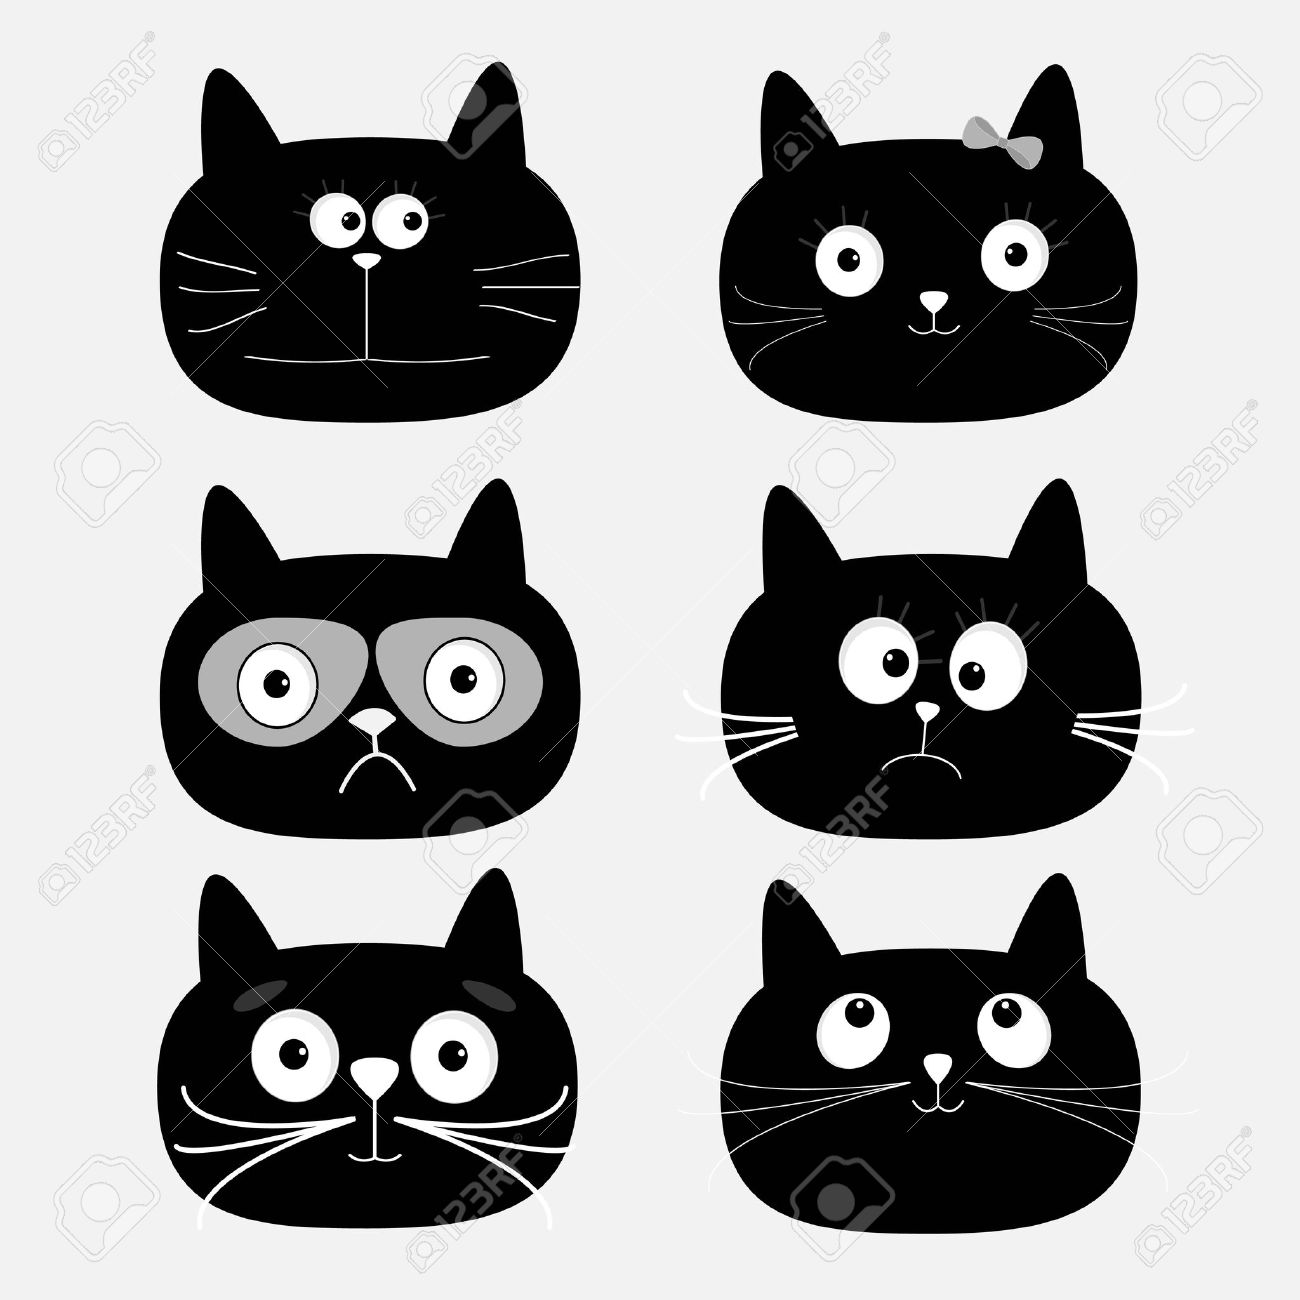 Ensemble De Tete De Chat Noir Mignon Personnages De Dessins Animes